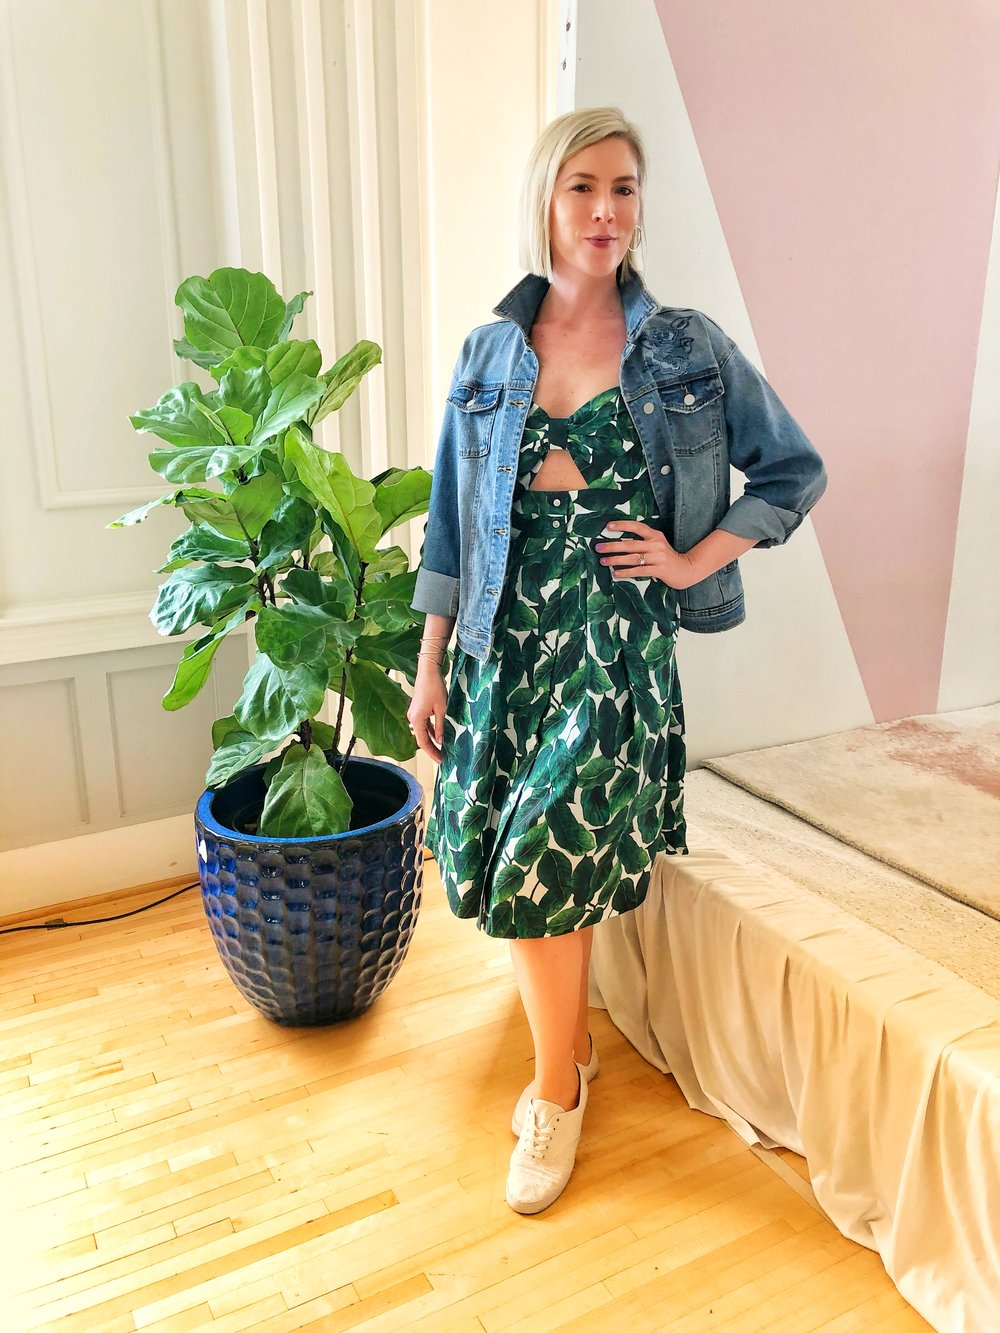 Milly Banana Leaf Dress from Rent the Runway on Fashion Blogger Stephanie Mack Kearney of The Borrowed Babes Fashion Blog.jpg